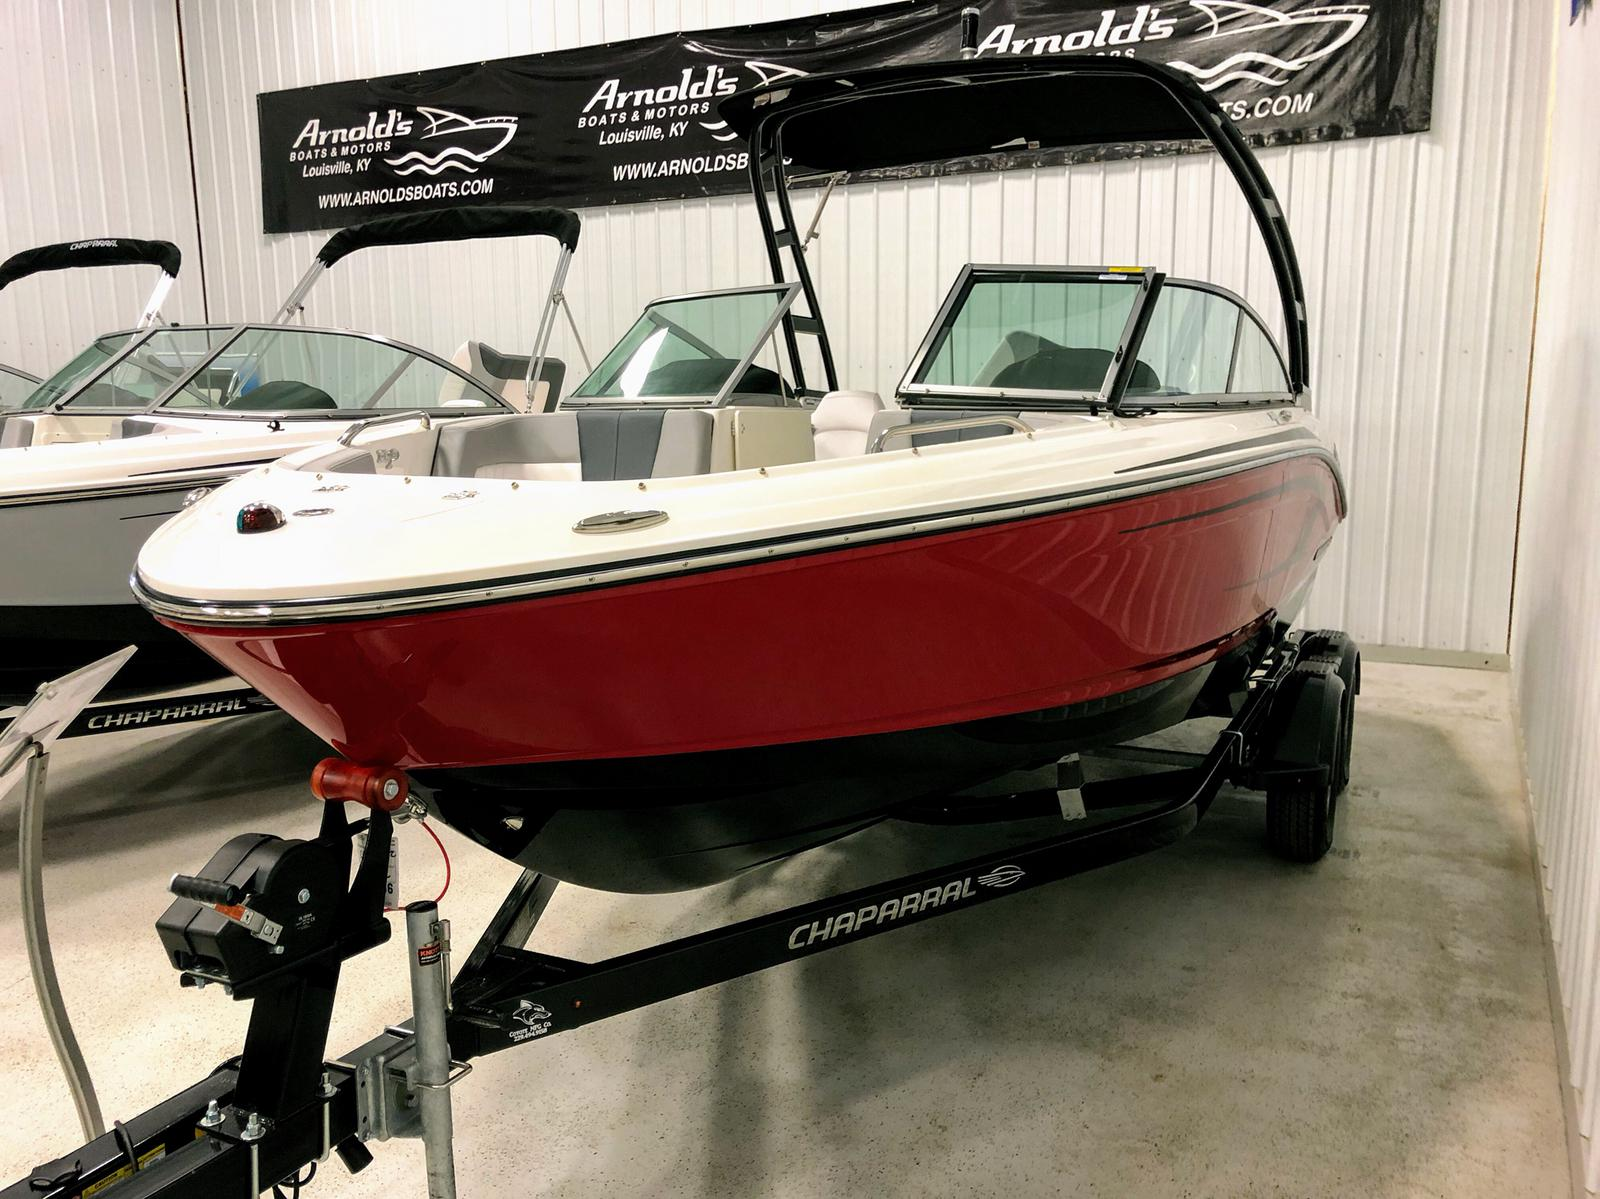 Inventory from Sea Ray and Chaparral Arnold's Boats & Motors